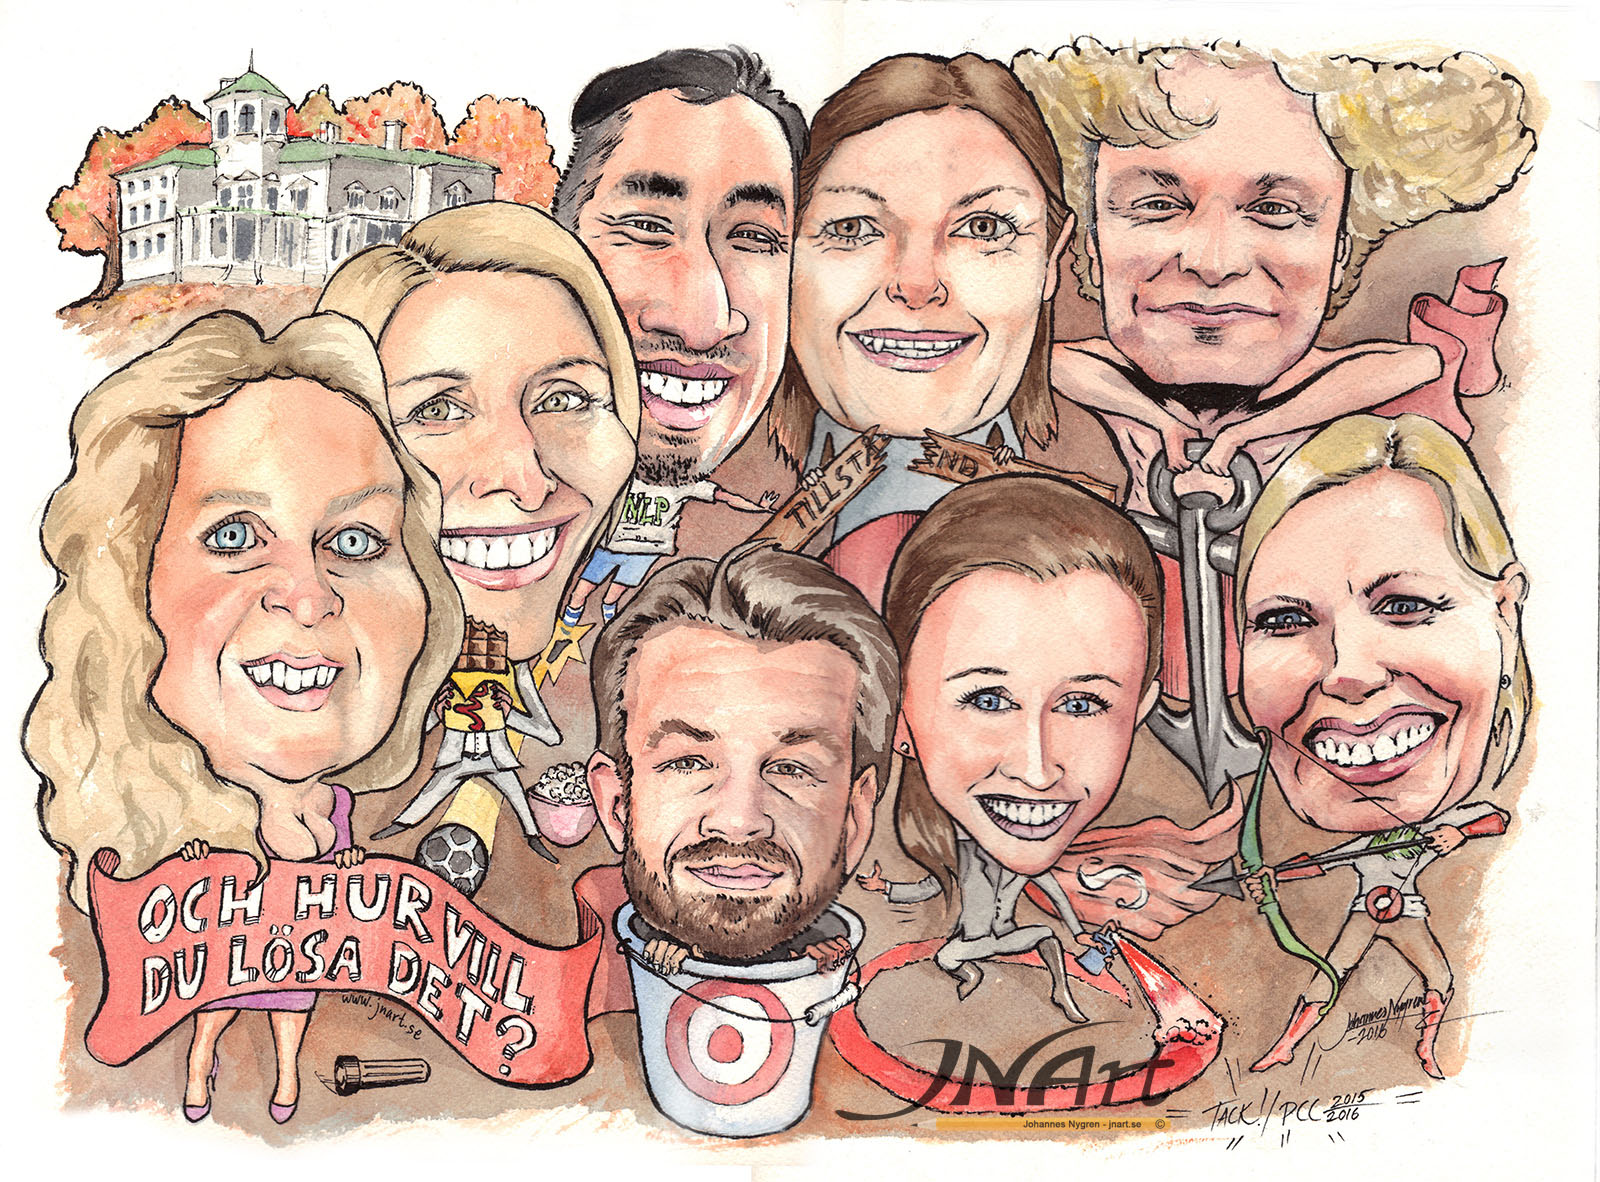 Caricature work team